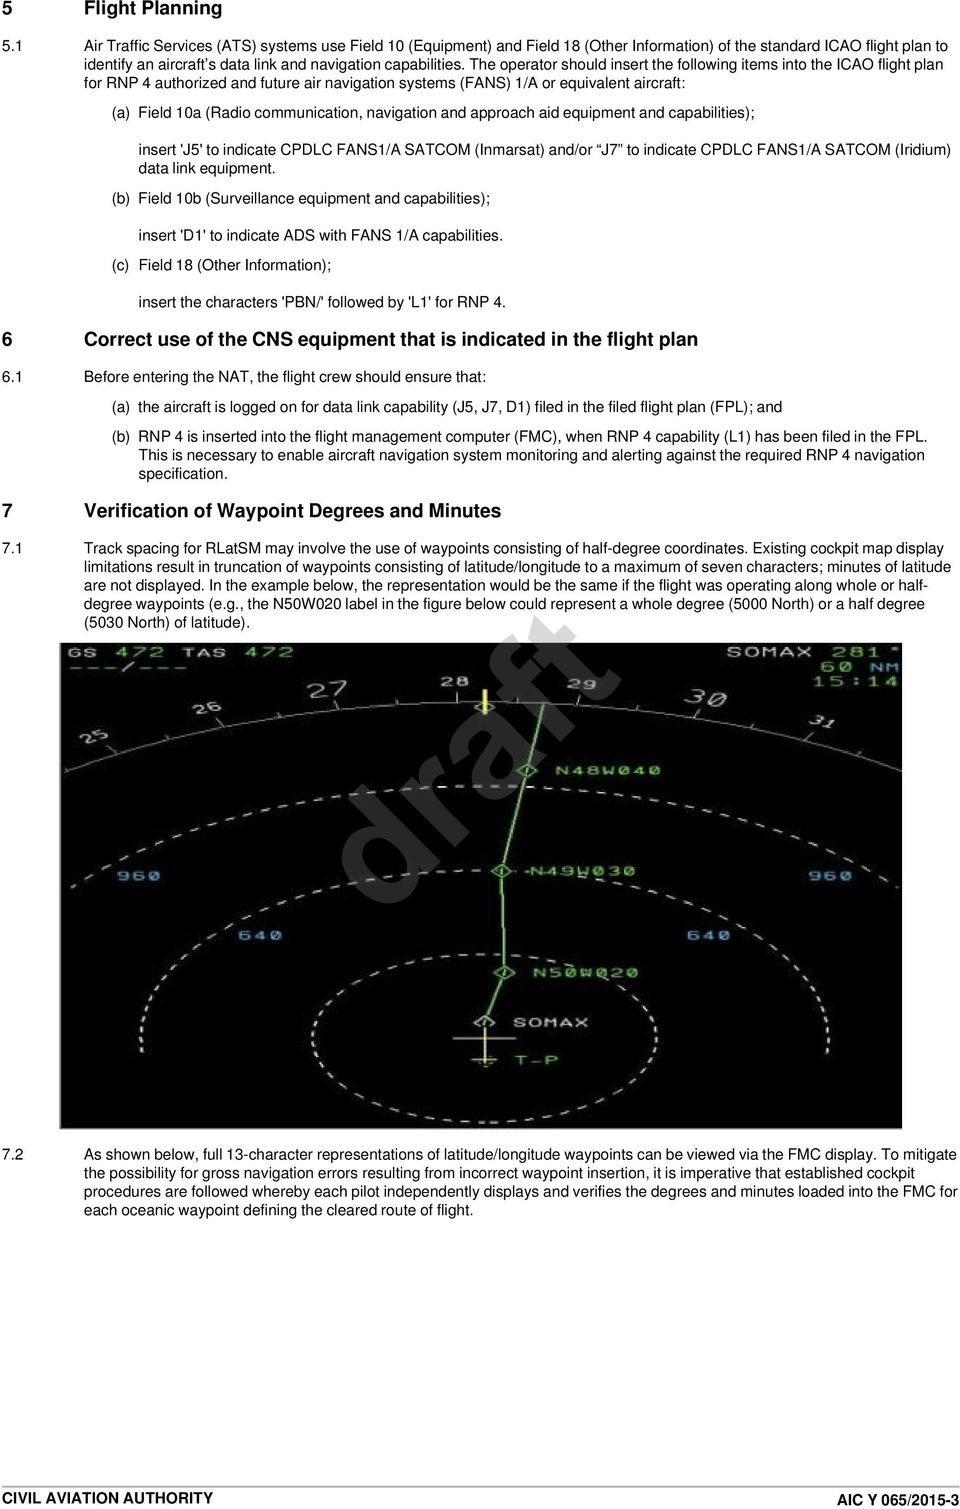 The operator should insert the following items into the ICAO flight plan for RNP 4 authorized and future air navigation systems (FANS) 1/A or equivalent aircraft: (a) Field 10a (Radio communication,